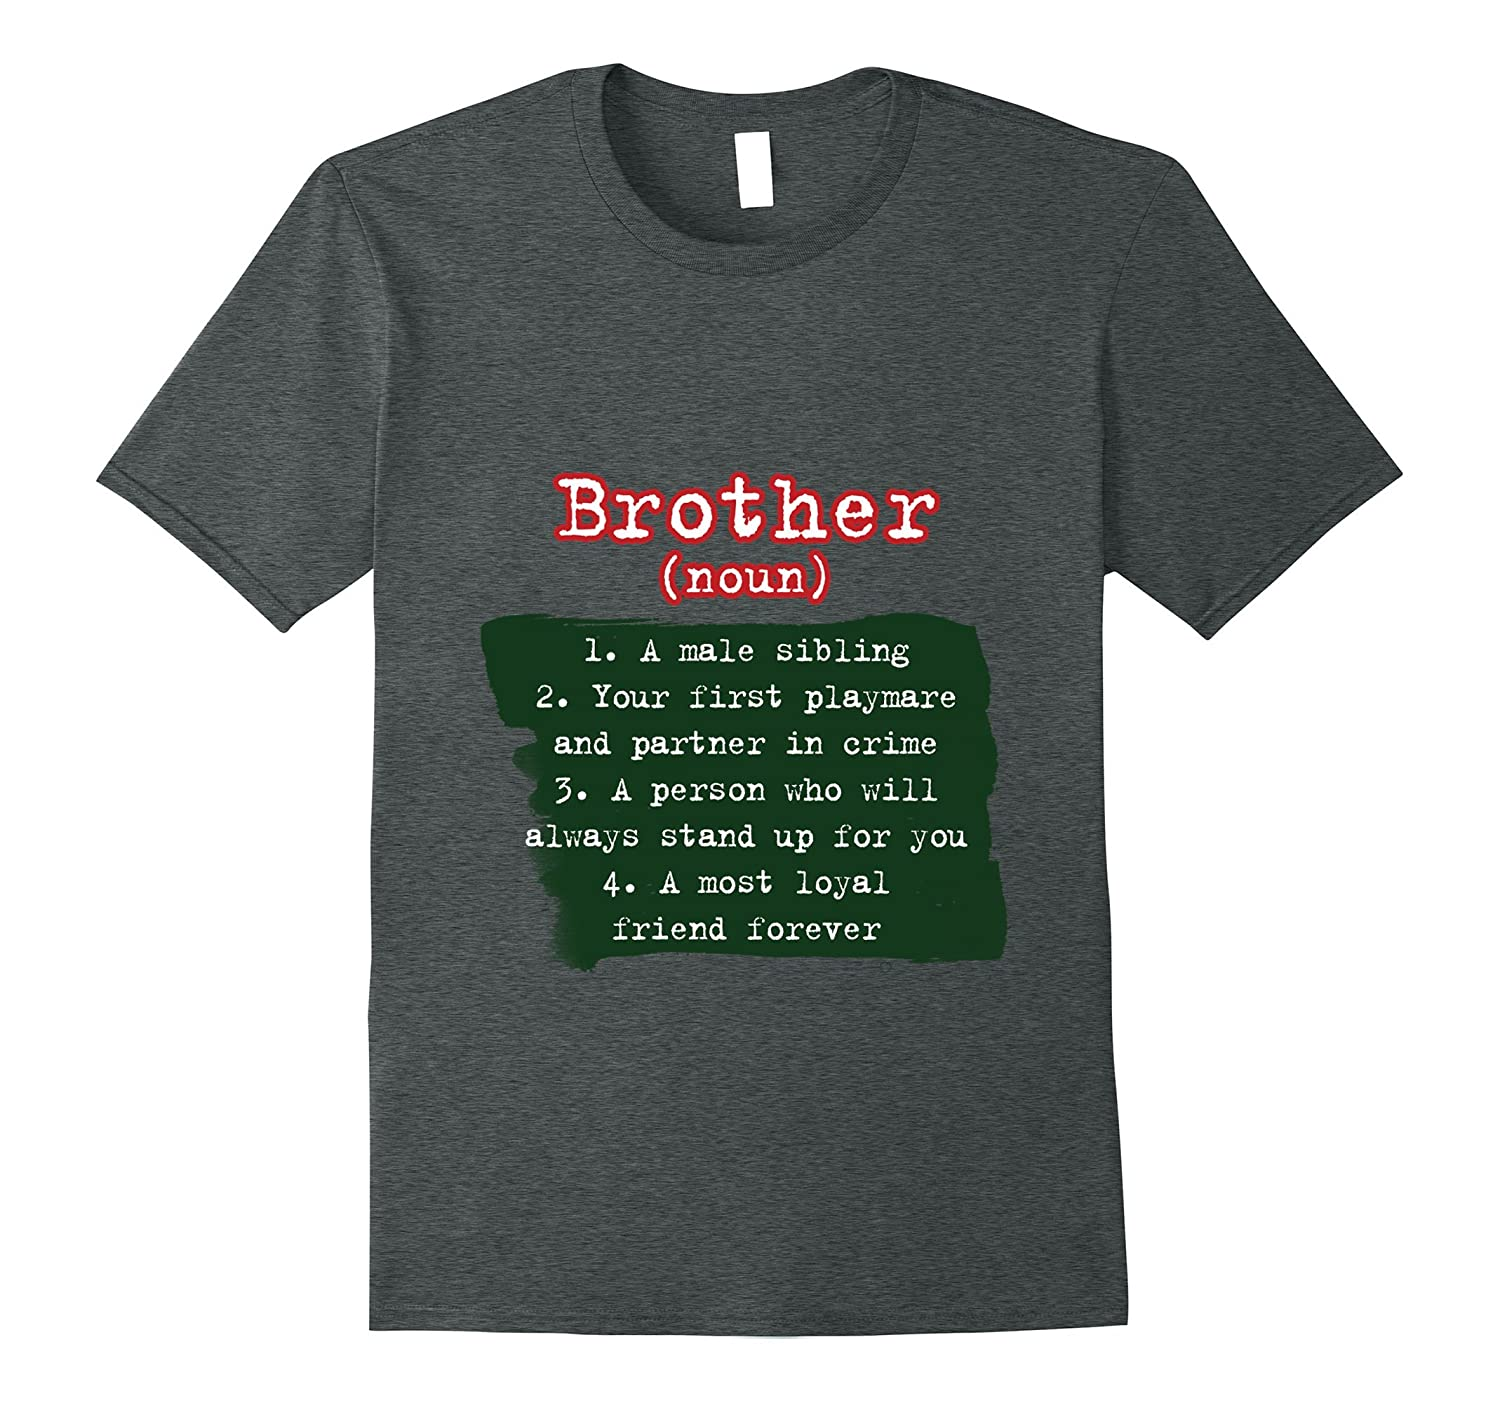 brother shirts sibling outfits family christmas gifts anz - Brother Christmas Gifts